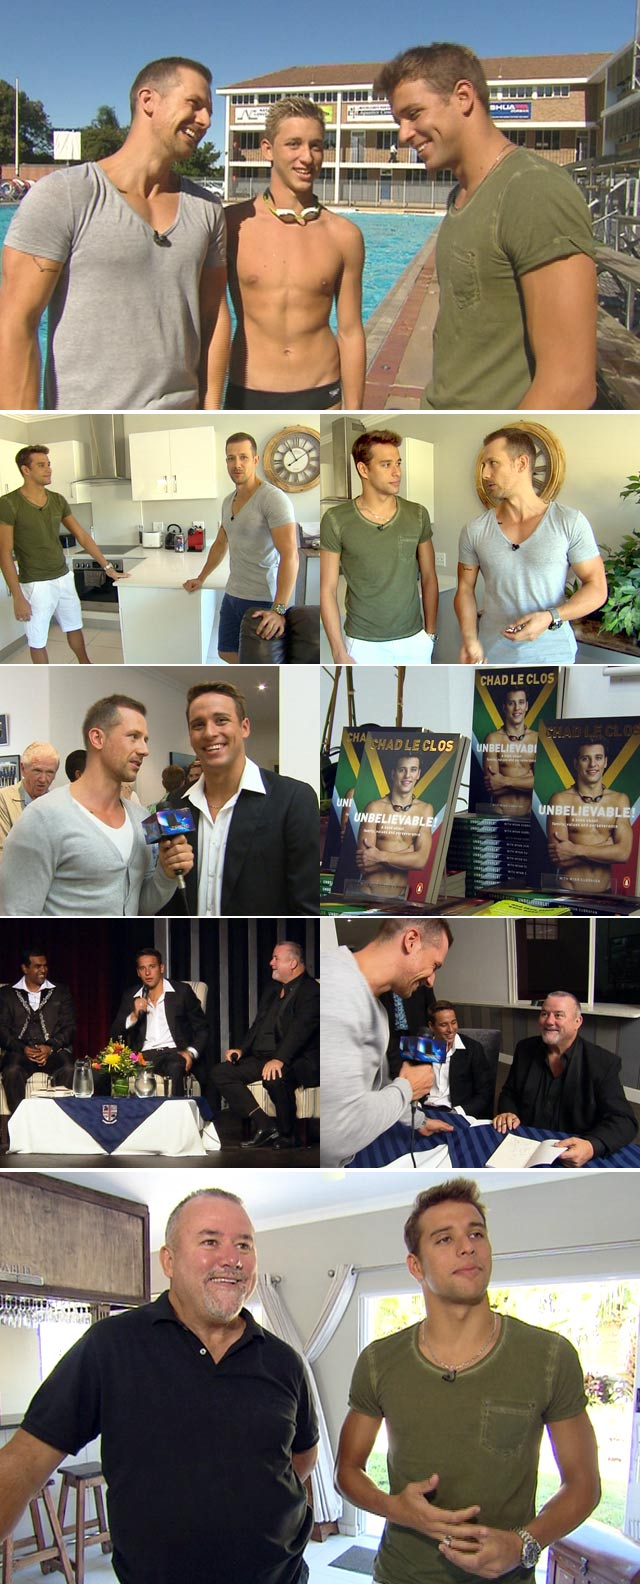 Chad le Clos' unbelievable new book on Top Billing